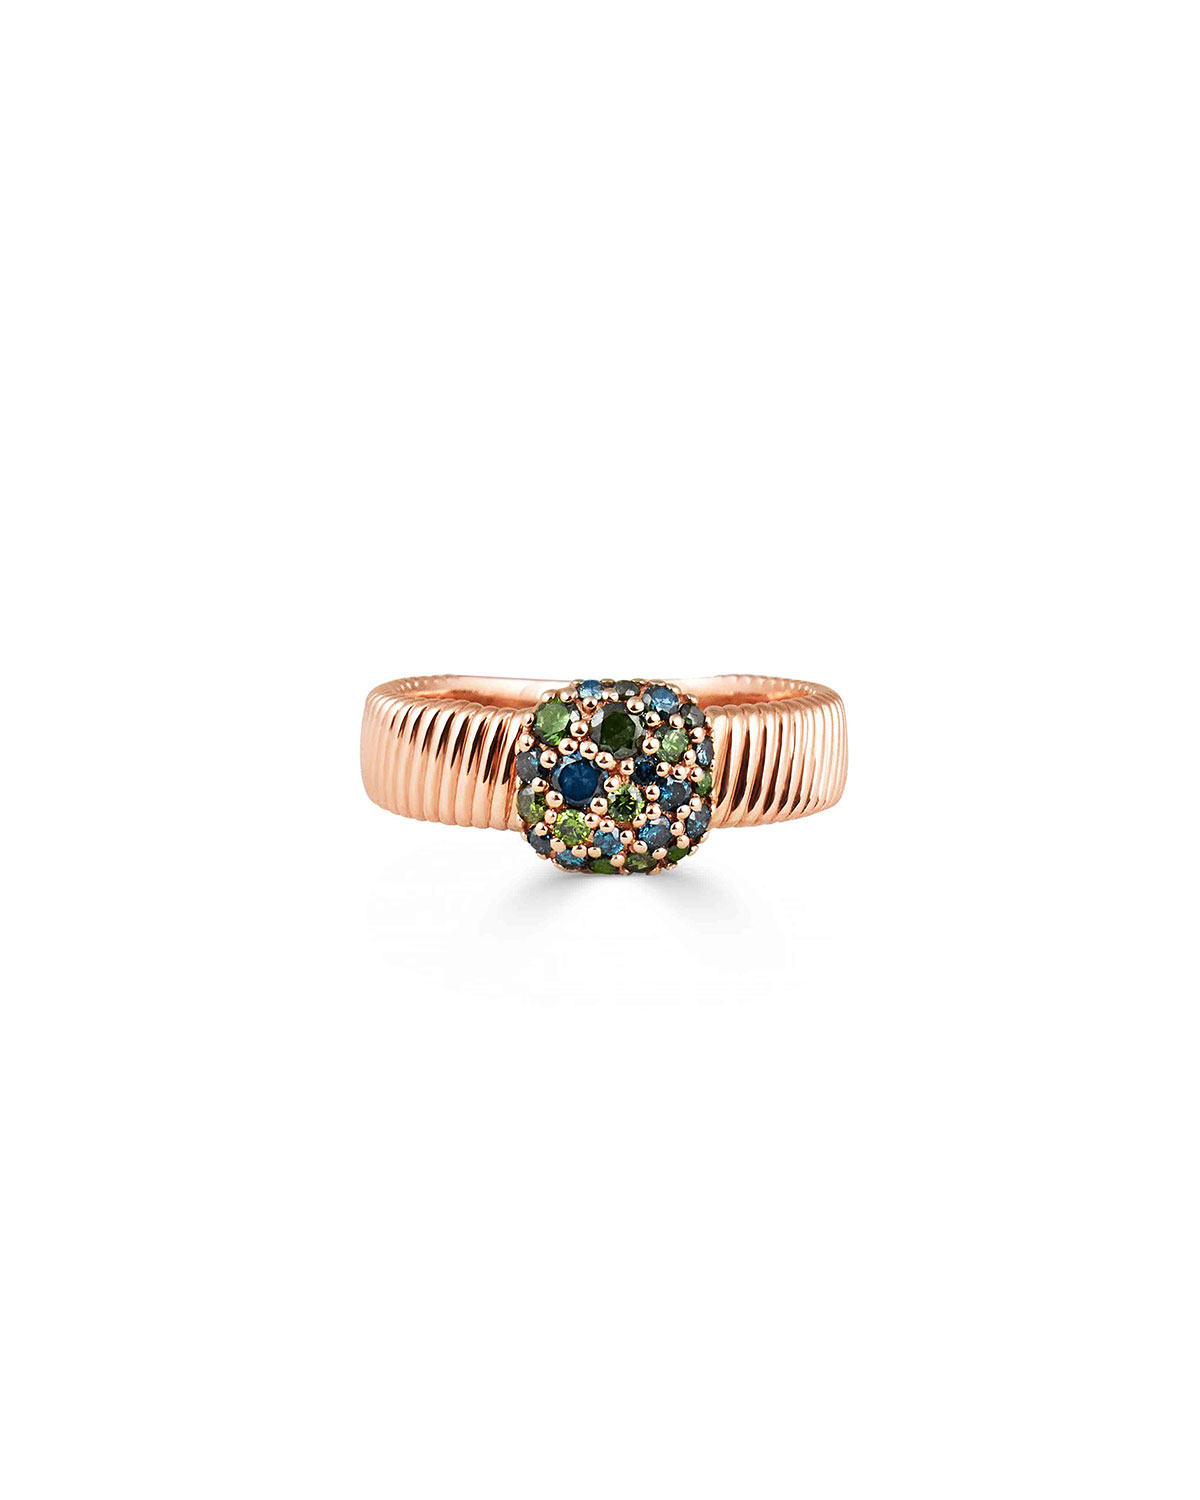 Stevie Wren Rounded Square Diamond Cigar Band Ring, Size 7